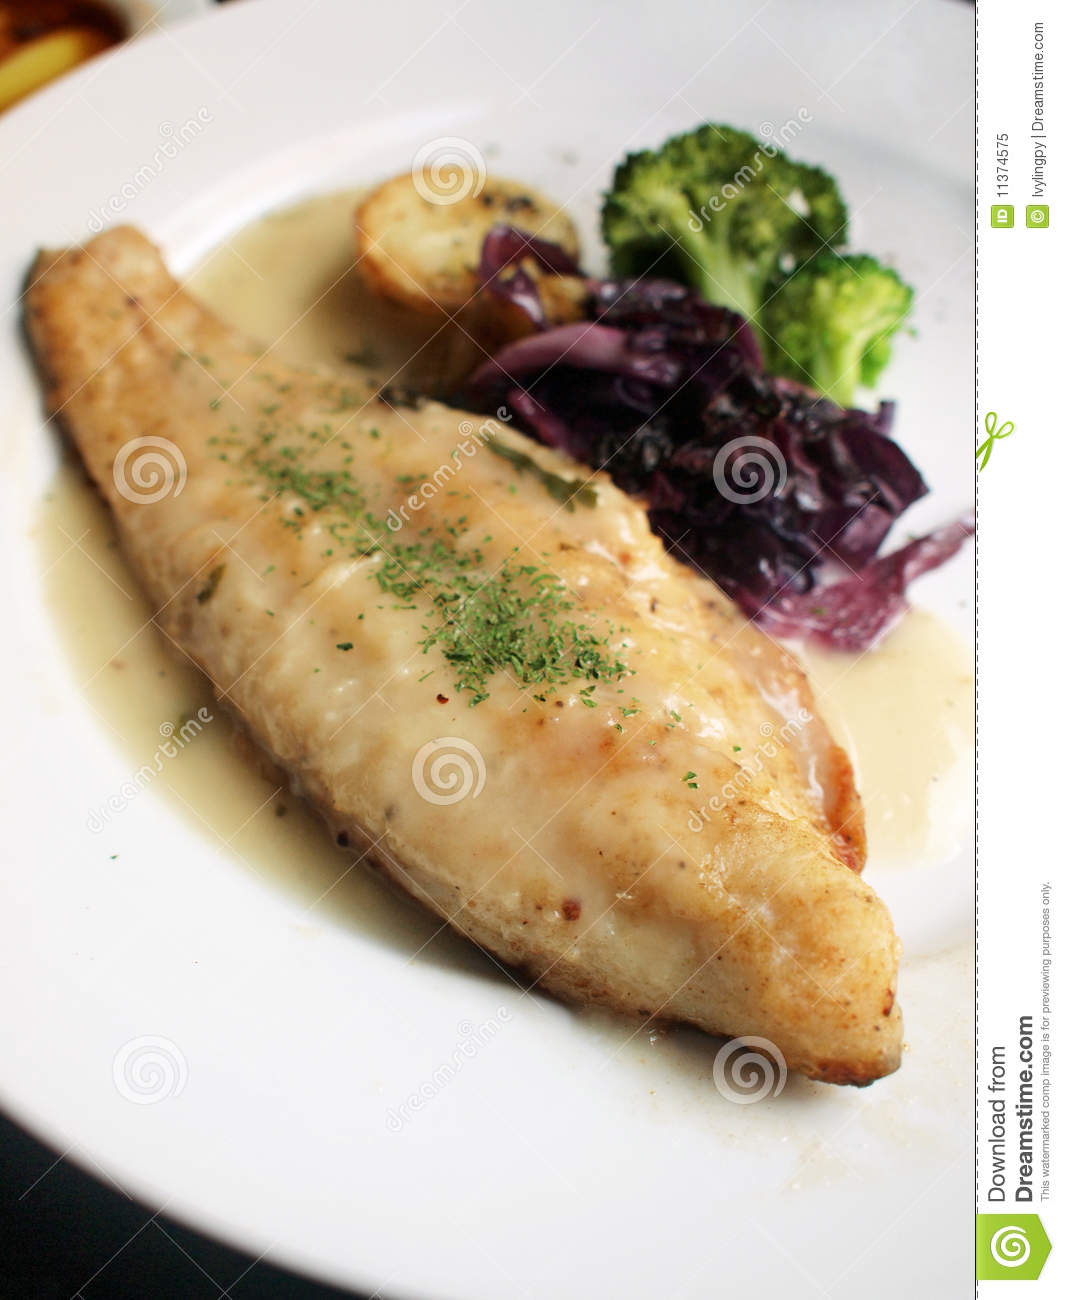 Fish fillet royalty free stock photo image 11374575 for Cuisine western